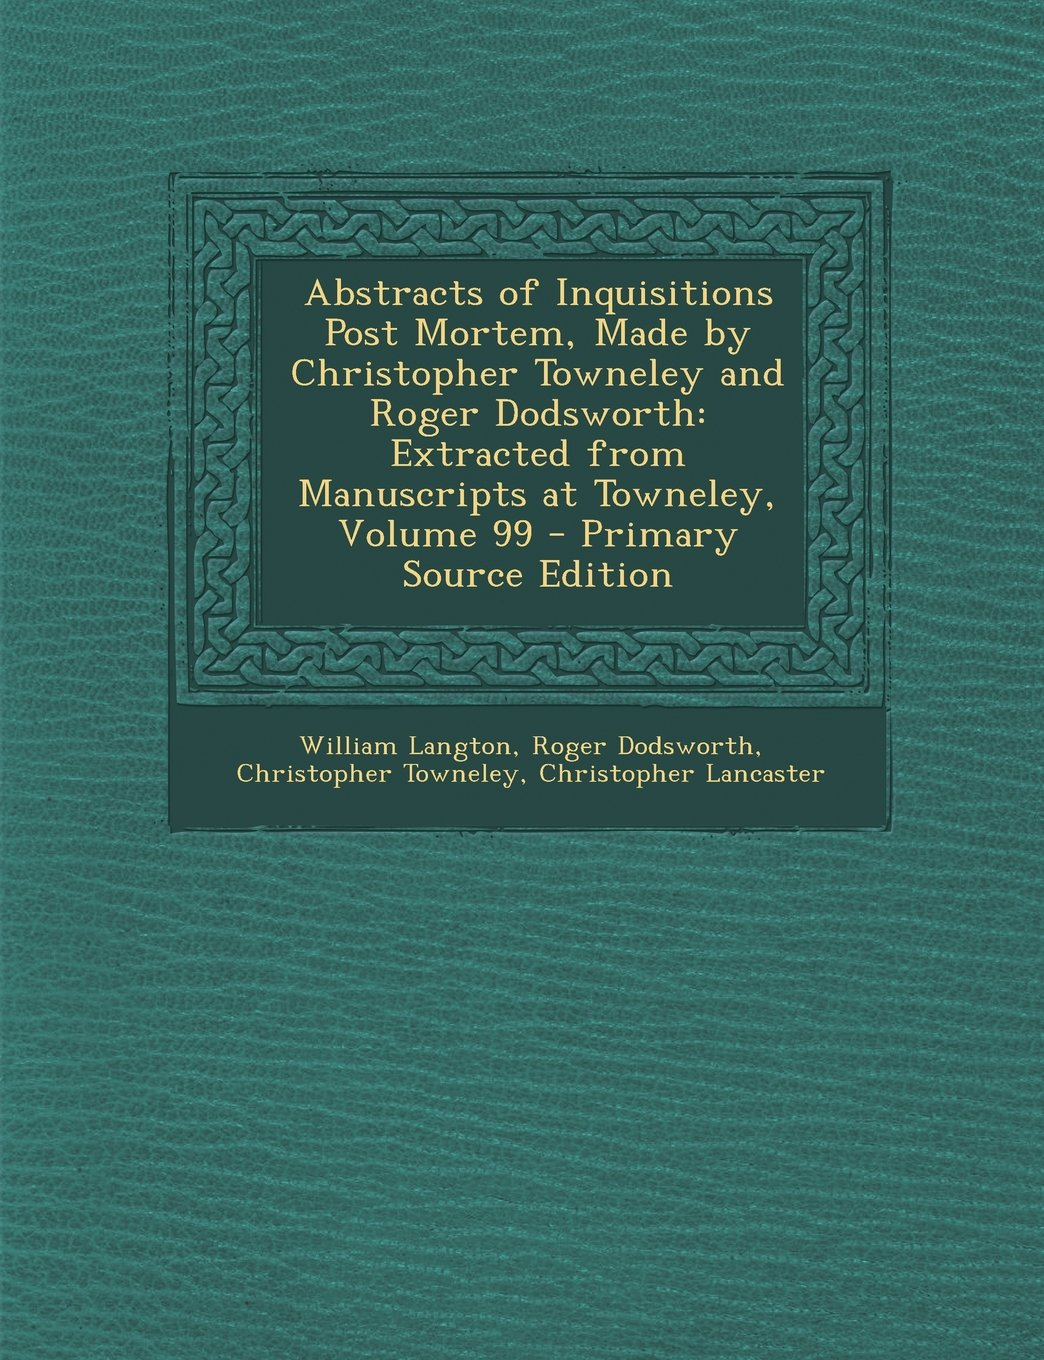 Read Online Abstracts of Inquisitions Post Mortem, Made by Christopher Towneley and Roger Dodsworth: Extracted from Manuscripts at Towneley, Volume 99 - Primary Source Edition ebook